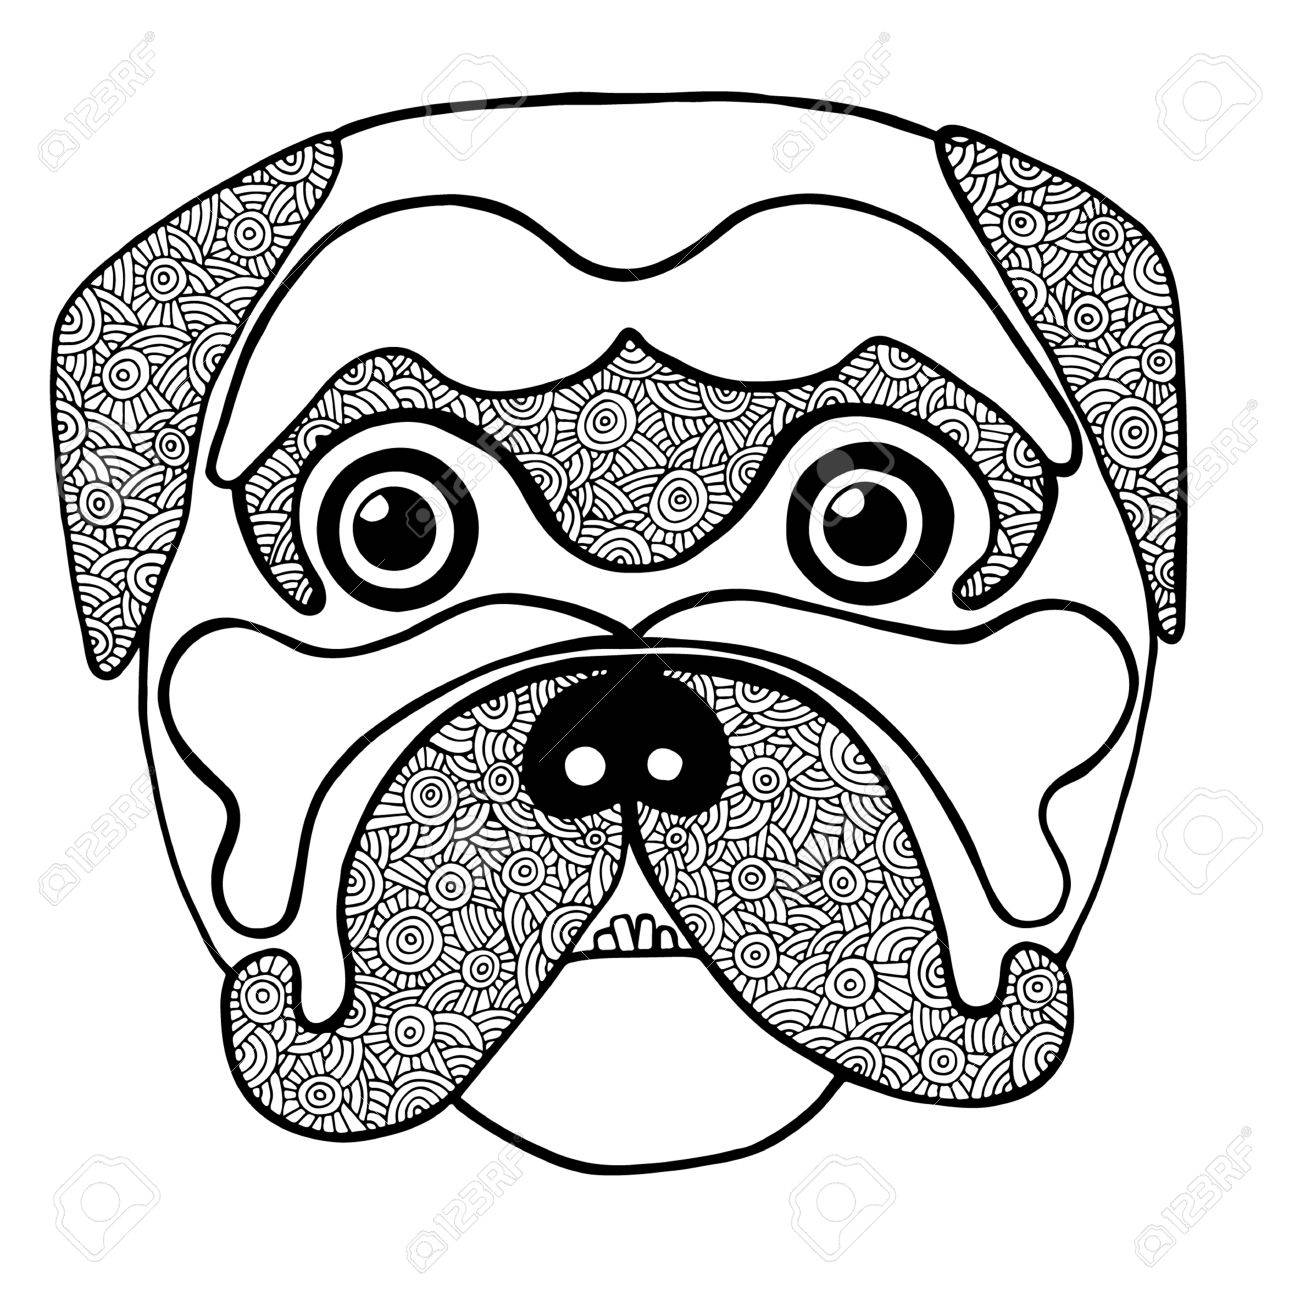 Black Line Cute Dog Head. Hand Drawn Sketch For Adult And Children ...